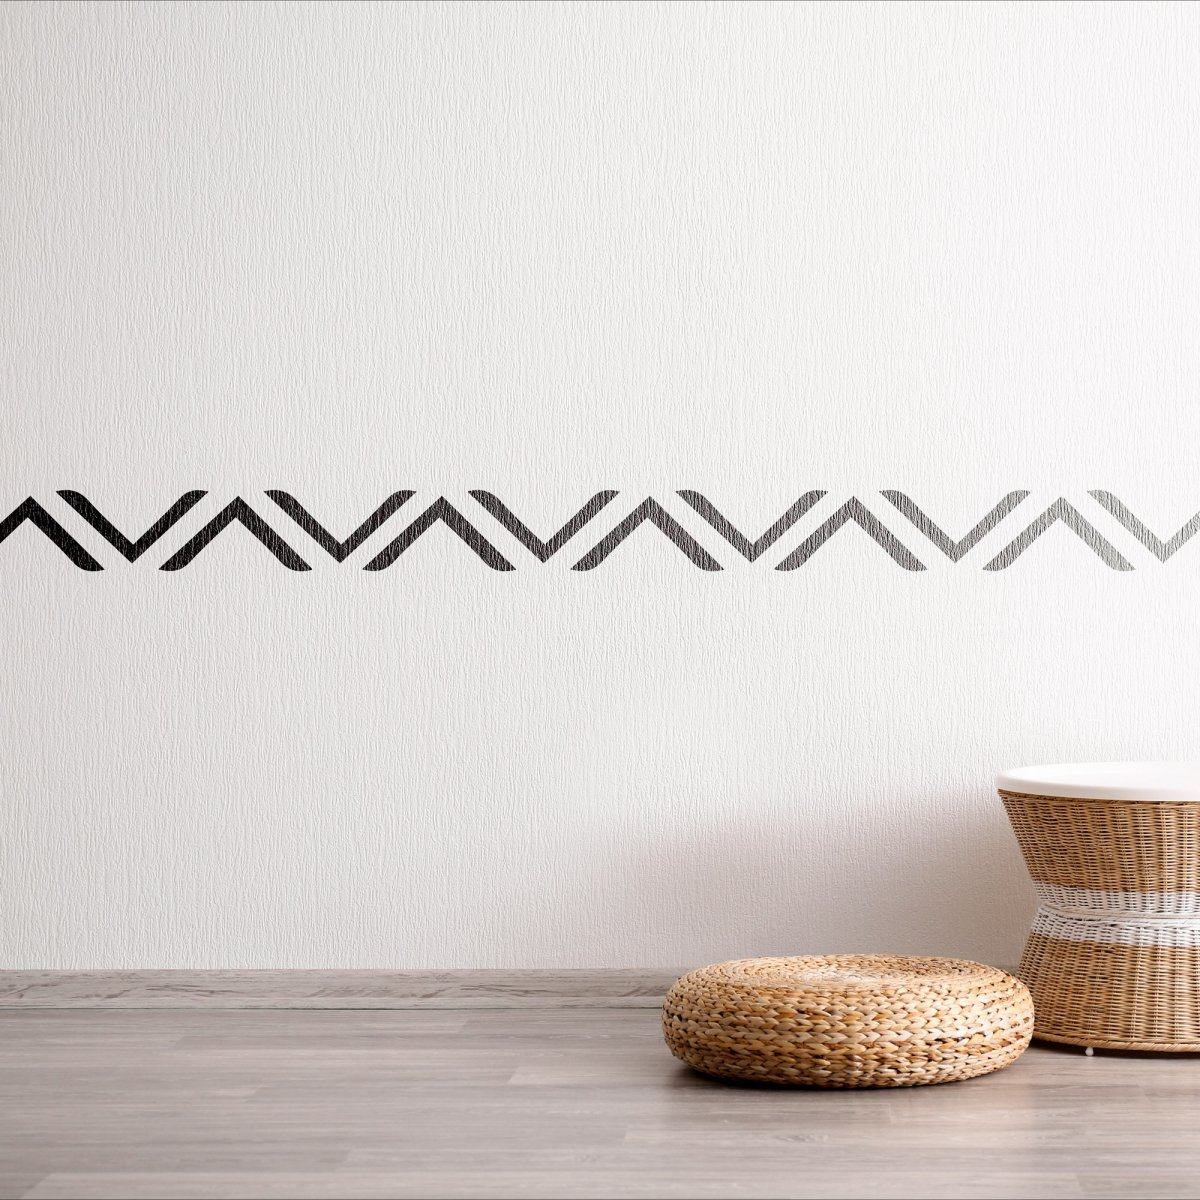 ANATOLIA RUG-RUNNING WATER I / Reusable Allover Large Wall Stencils for Painting